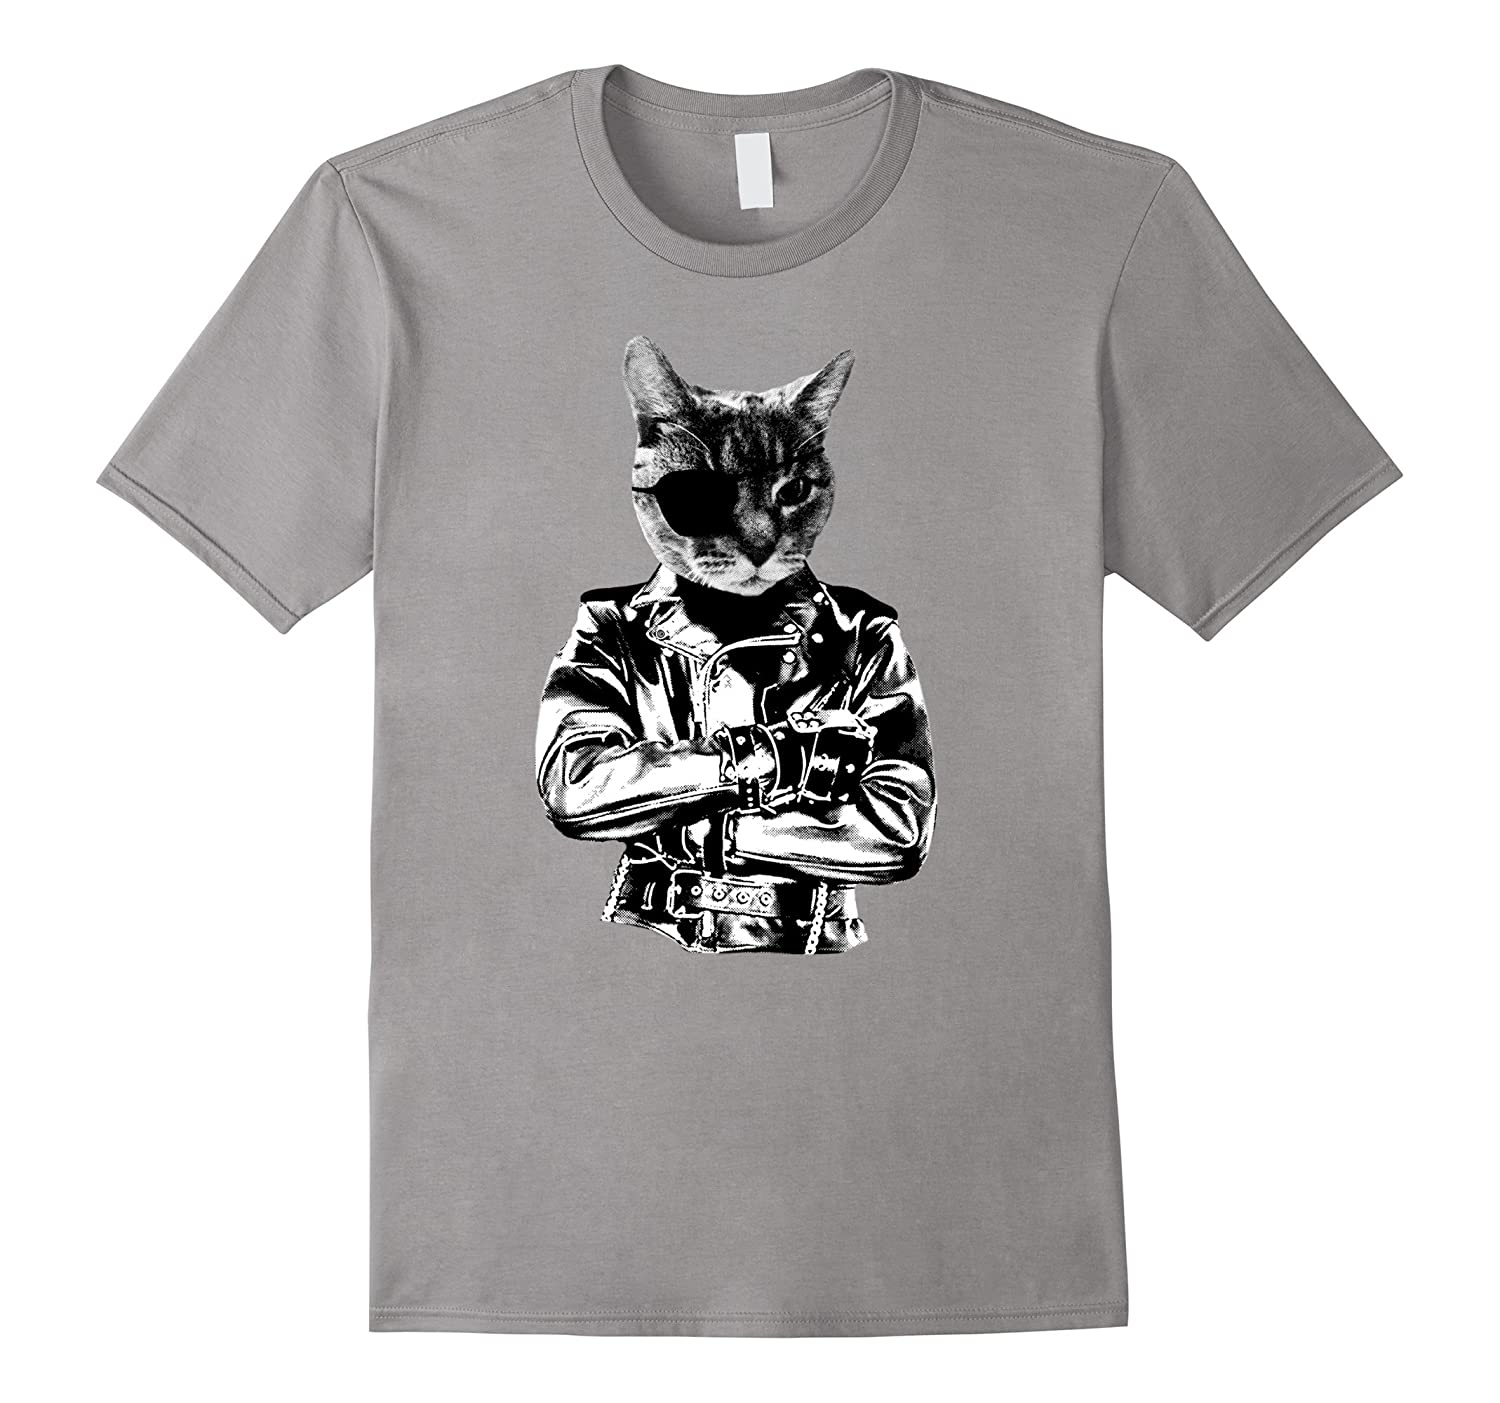 Badass Cat T-Shirt Funny Cat with Attitude-CL